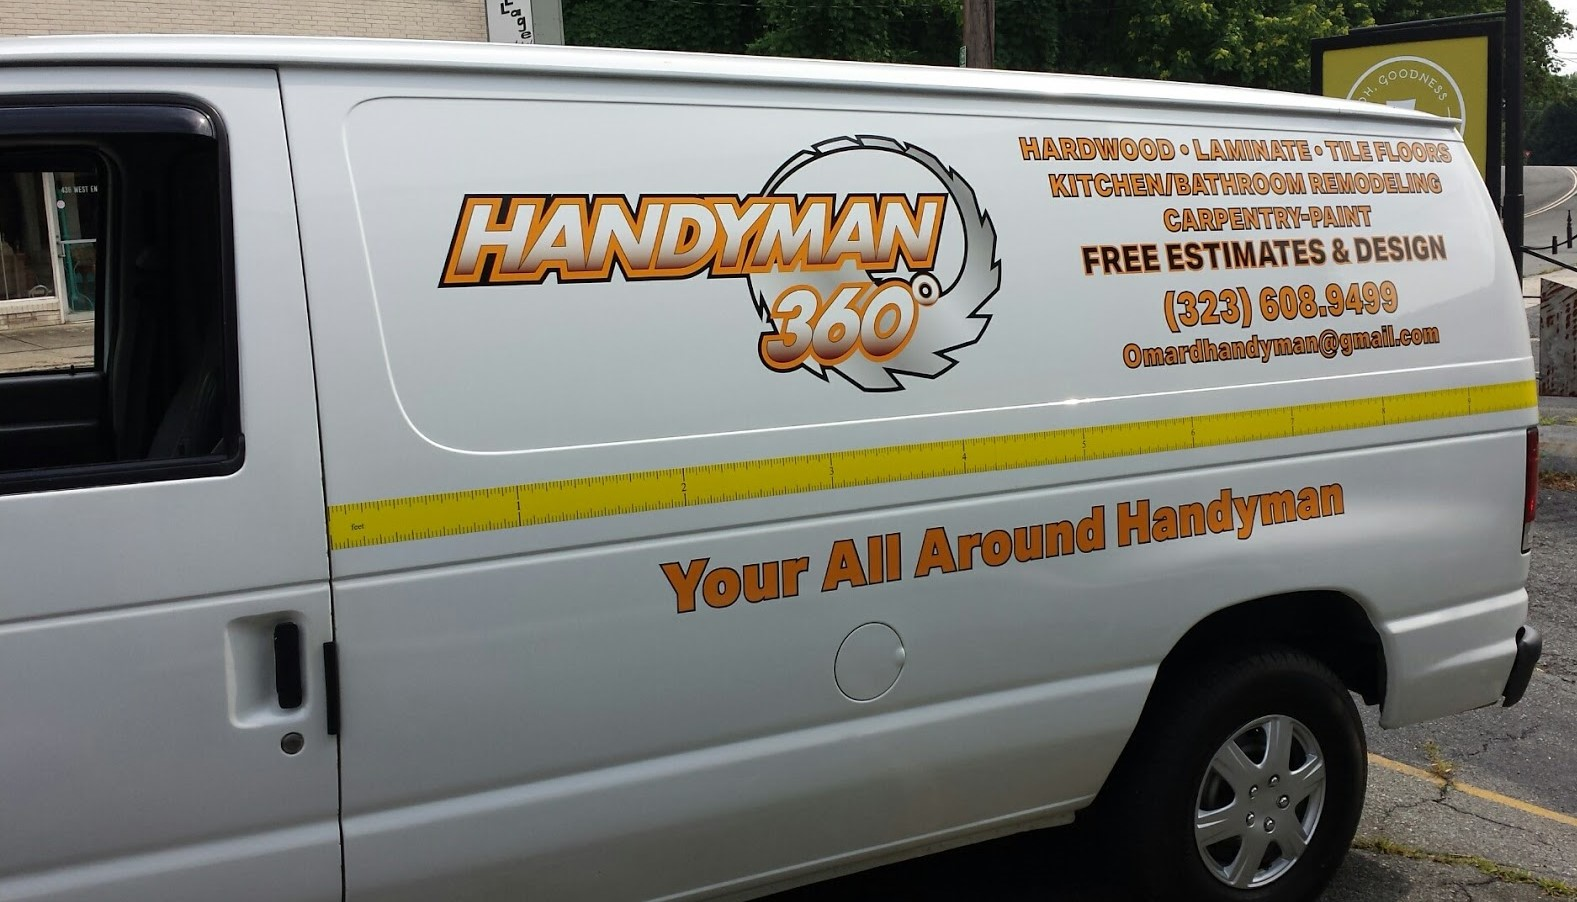 handyman_360_carpentry_paint_remodeling_laminate_van_left_side_view_vehicle_wrap